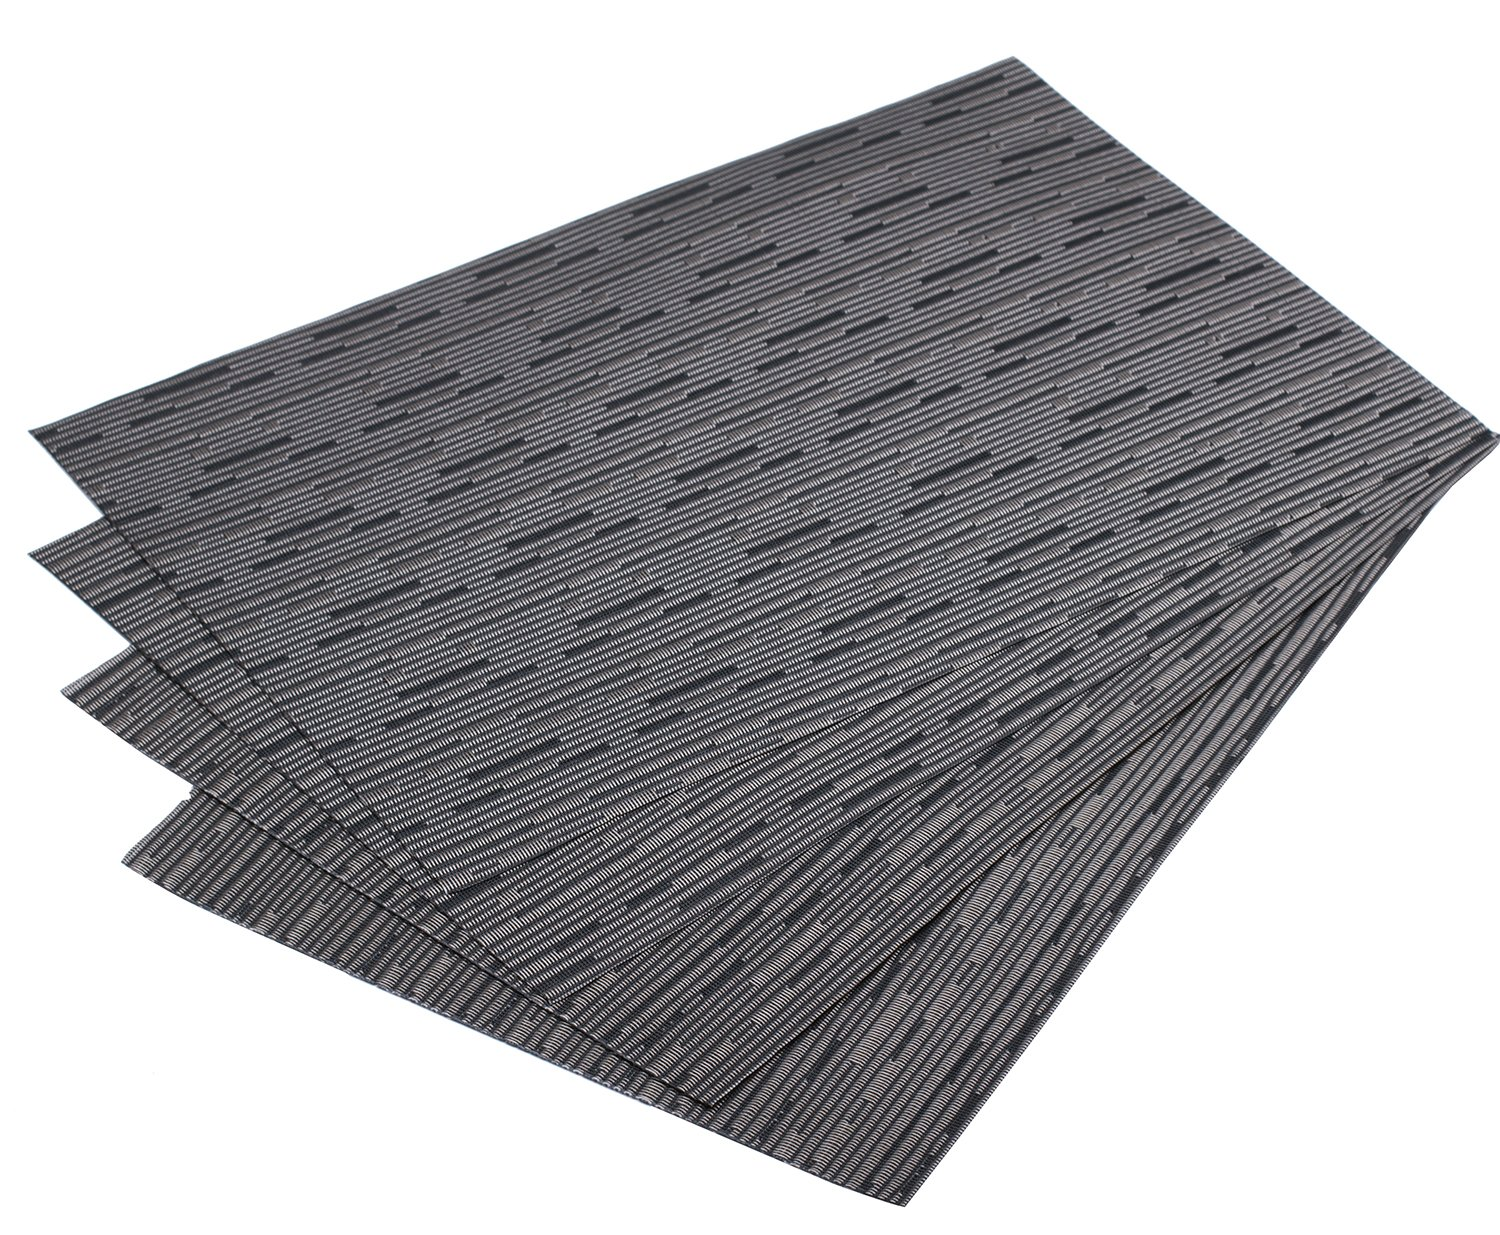 Amazon: Mint Cook Washable Reversible Heatresistant Placemats For  Dining Table, Gray Bamboo Shape, Set Of 4: Home & Kitchen